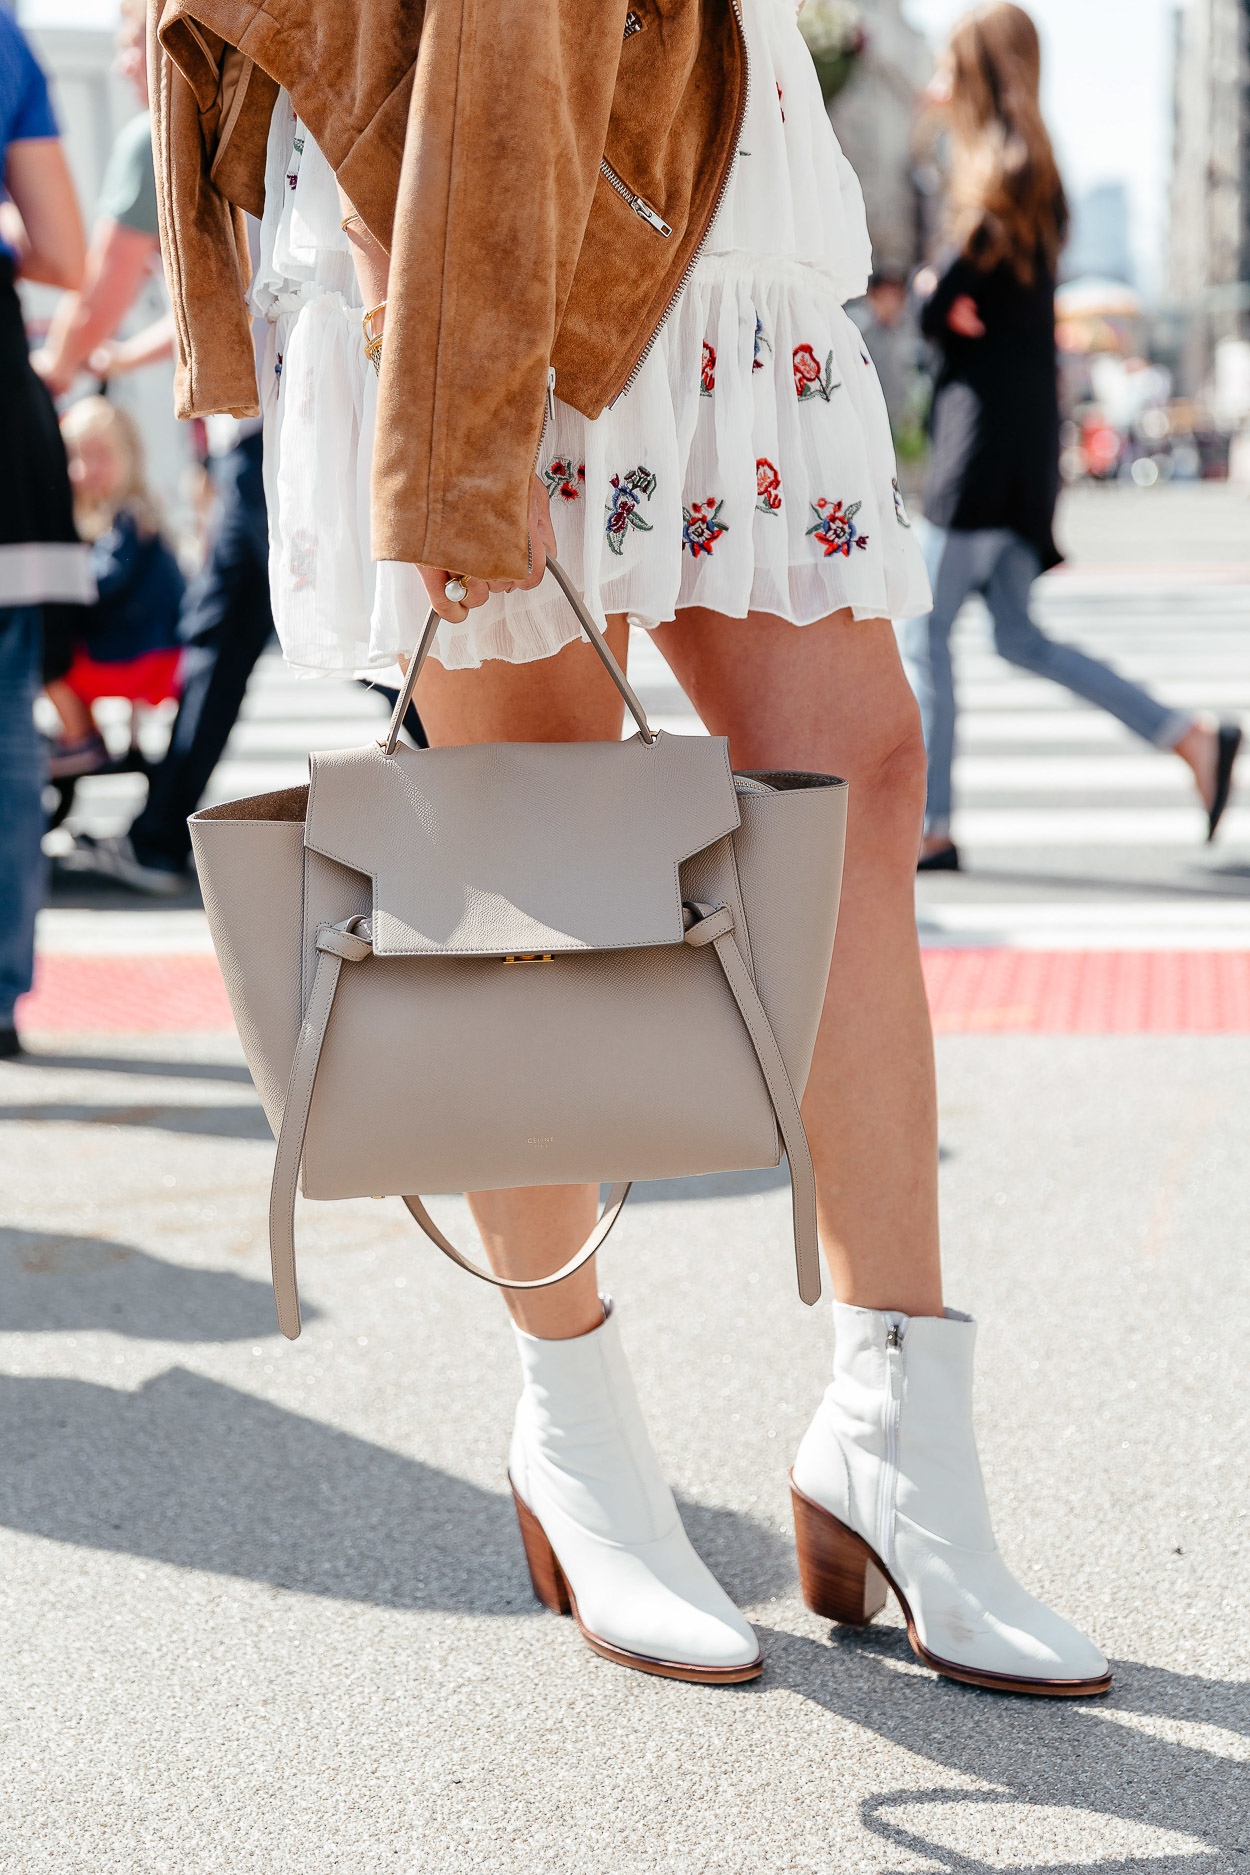 Topshop white booties and Celine belt bag are perfect accessories for NYFW as seen on blogger A Glam Lifestyle